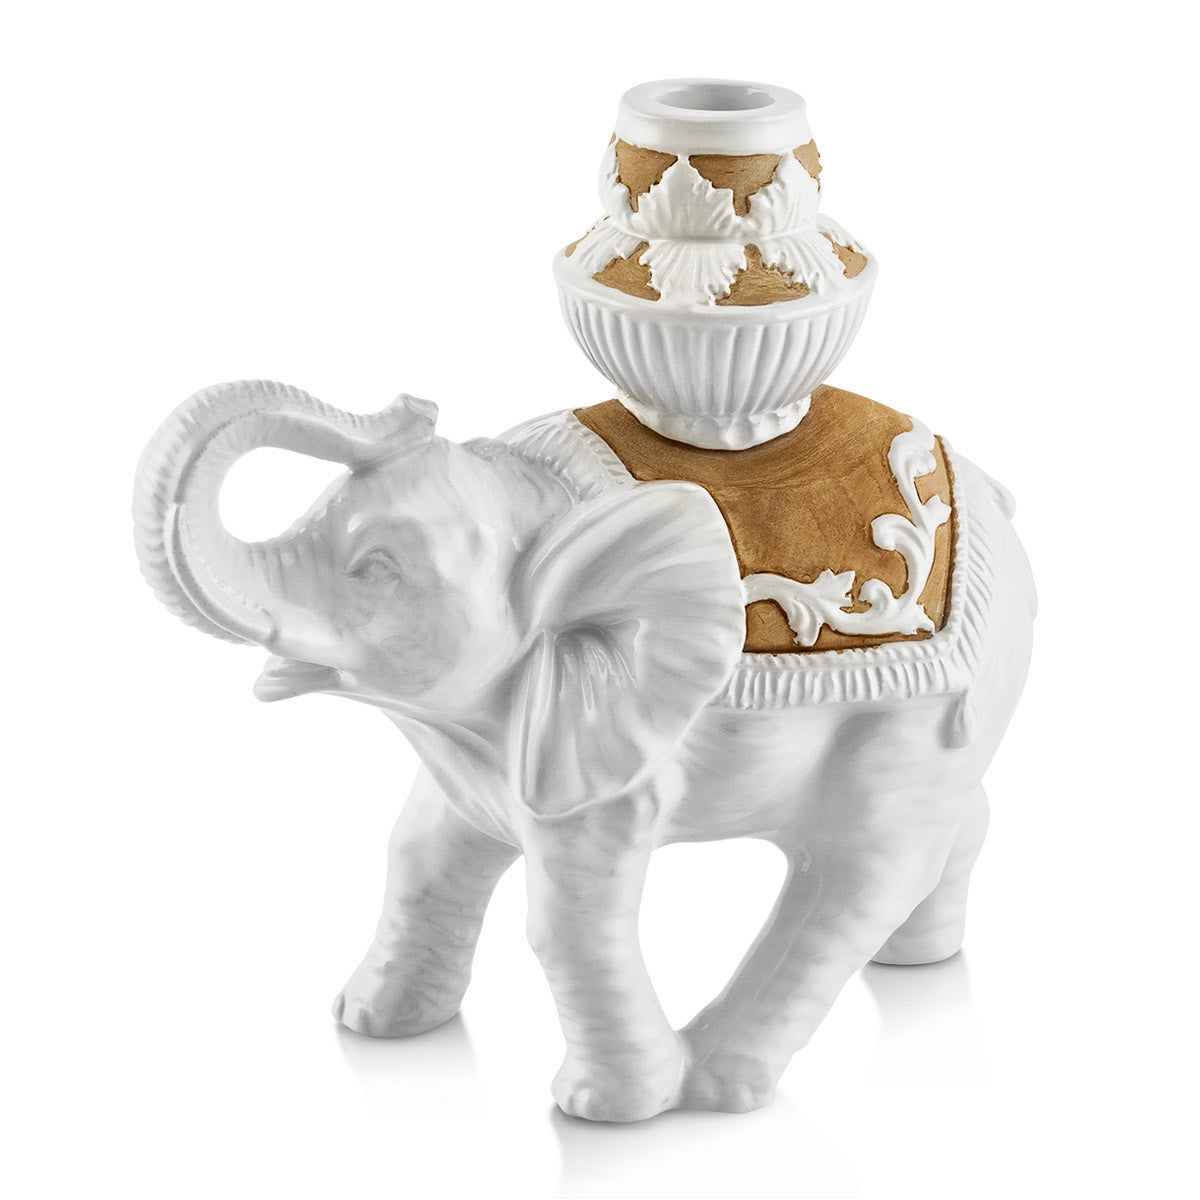 caparisoned elephant candle holder ceramic porcelain in white glaze and finished in brown natural color